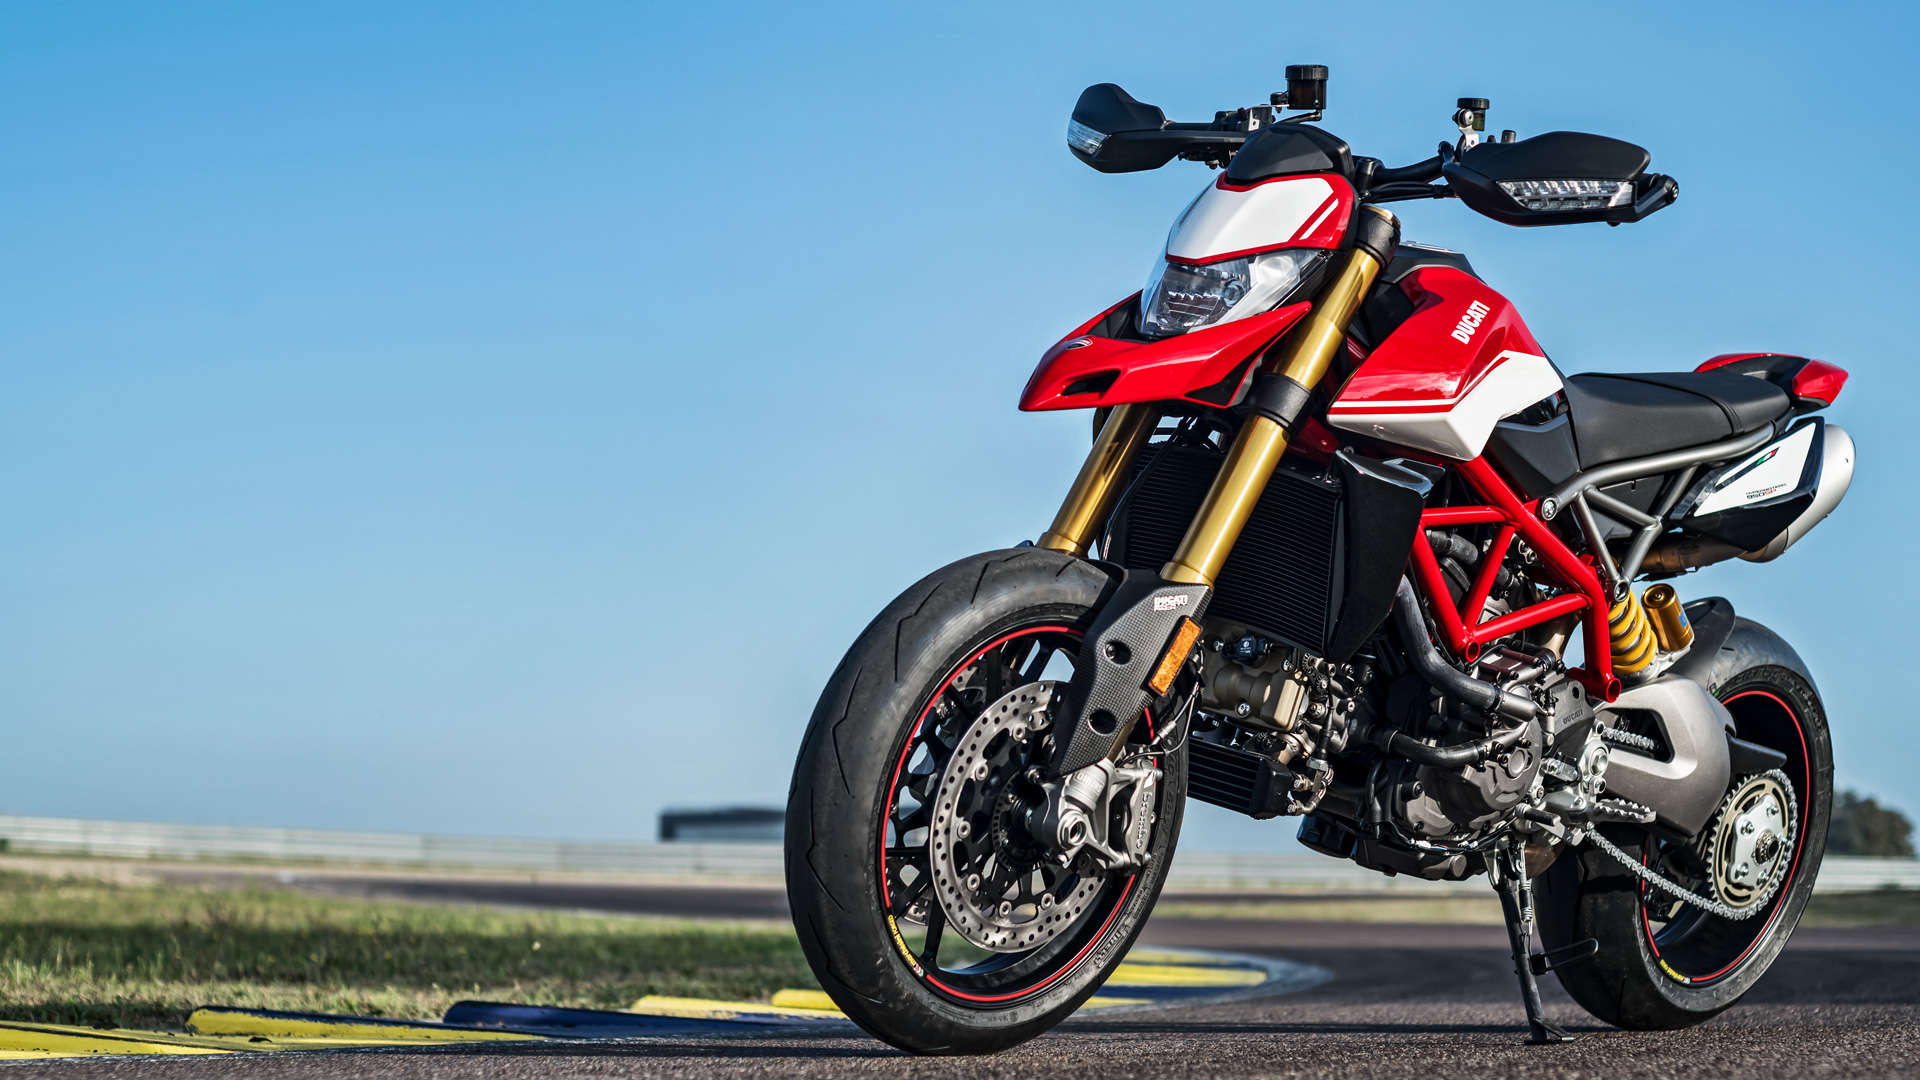 New Launches Ducati Hypermotard 950 Launches In India Priced At Rs